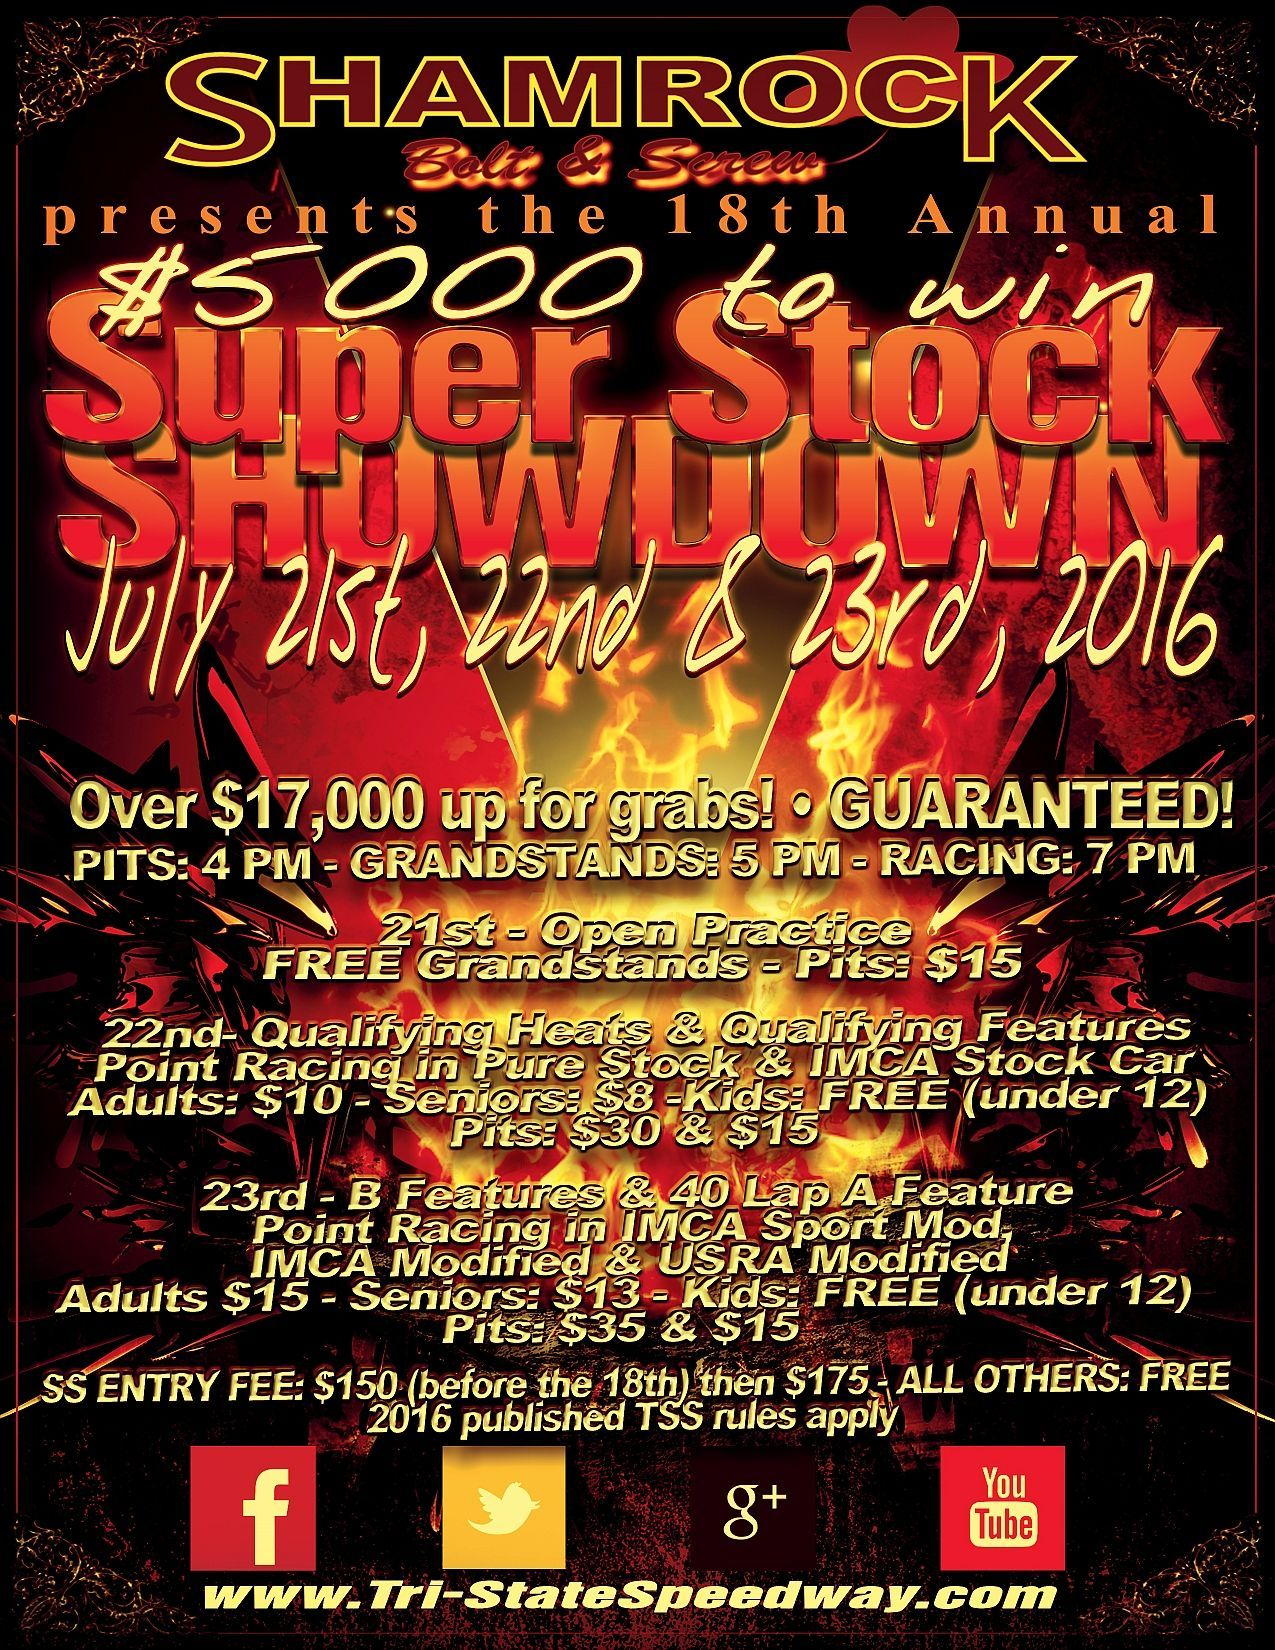 18th Annual $5,000 to Win Super Stock Showdown presented by Shamrock Bolt & Screw Company